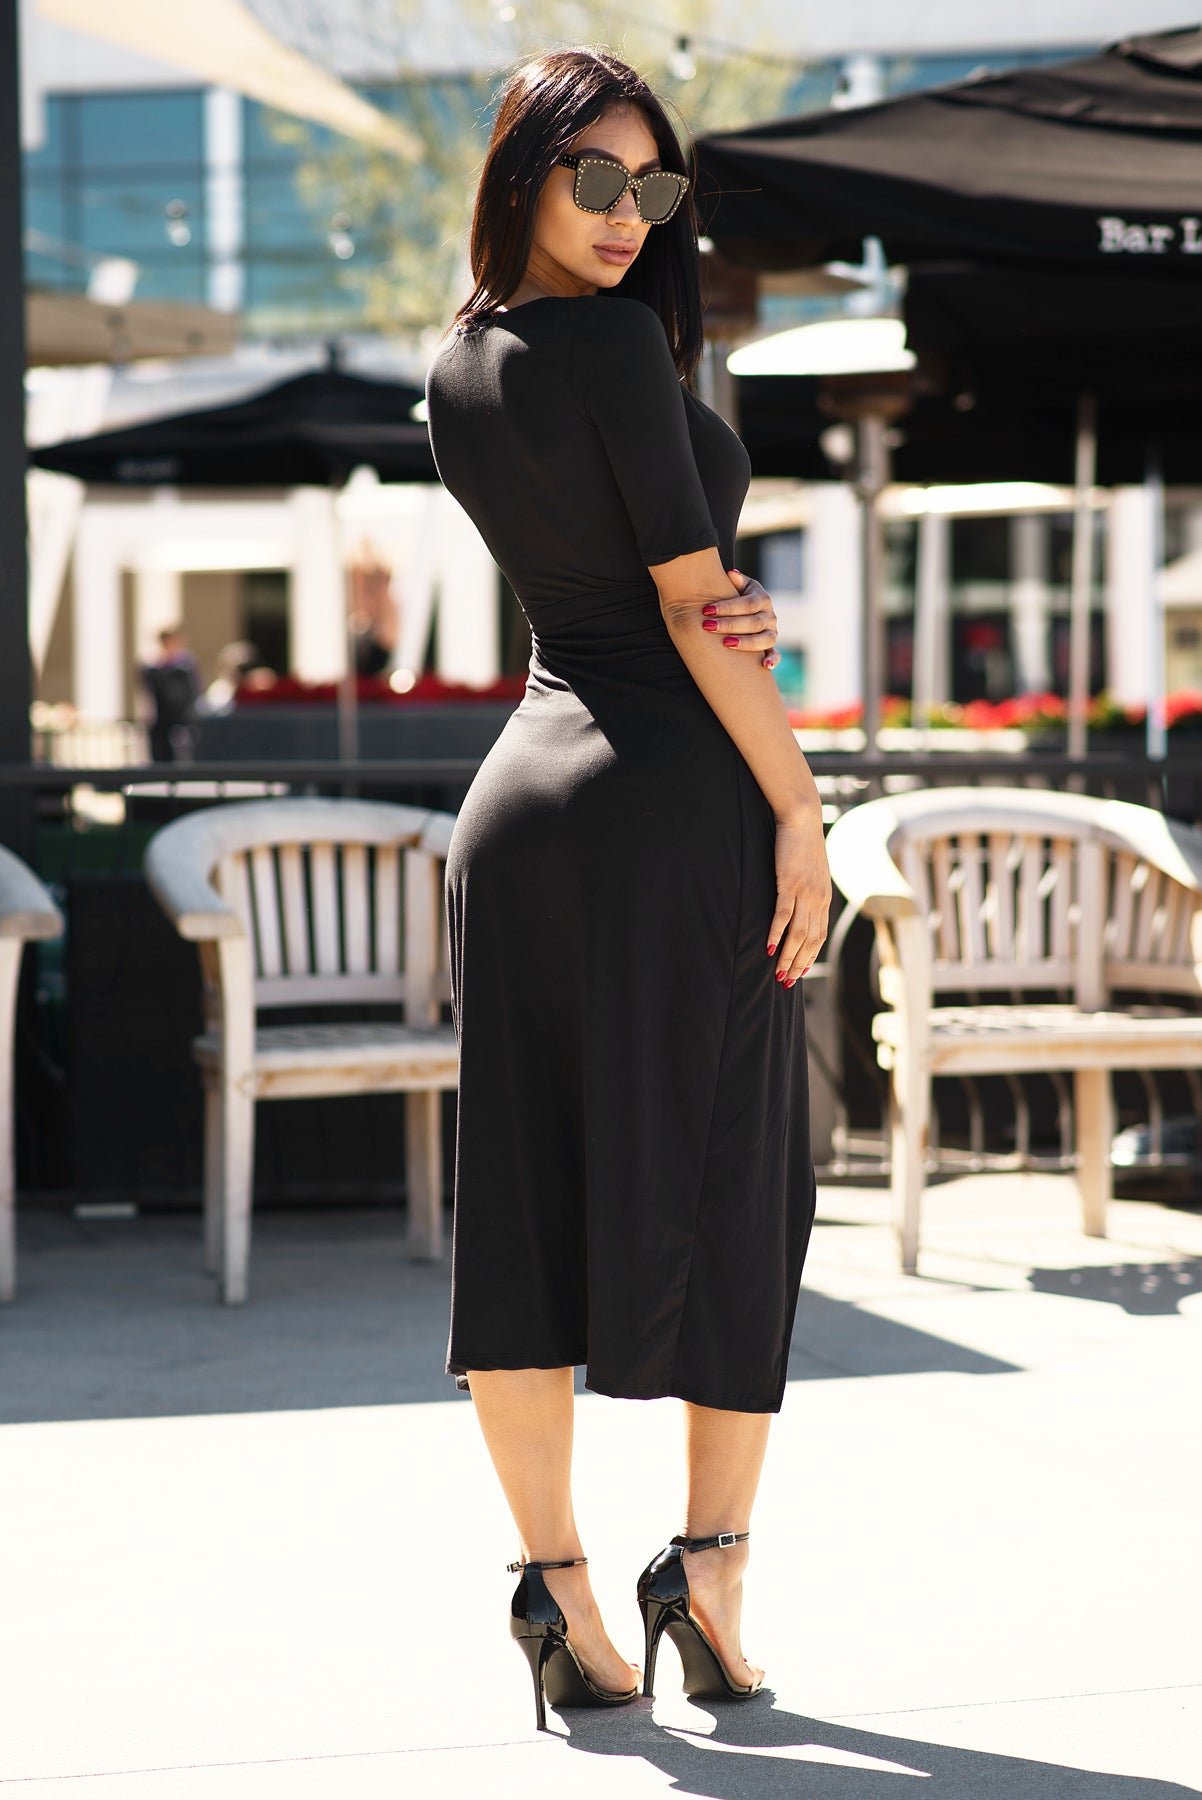 Lizbeth Wrap Dress - Black